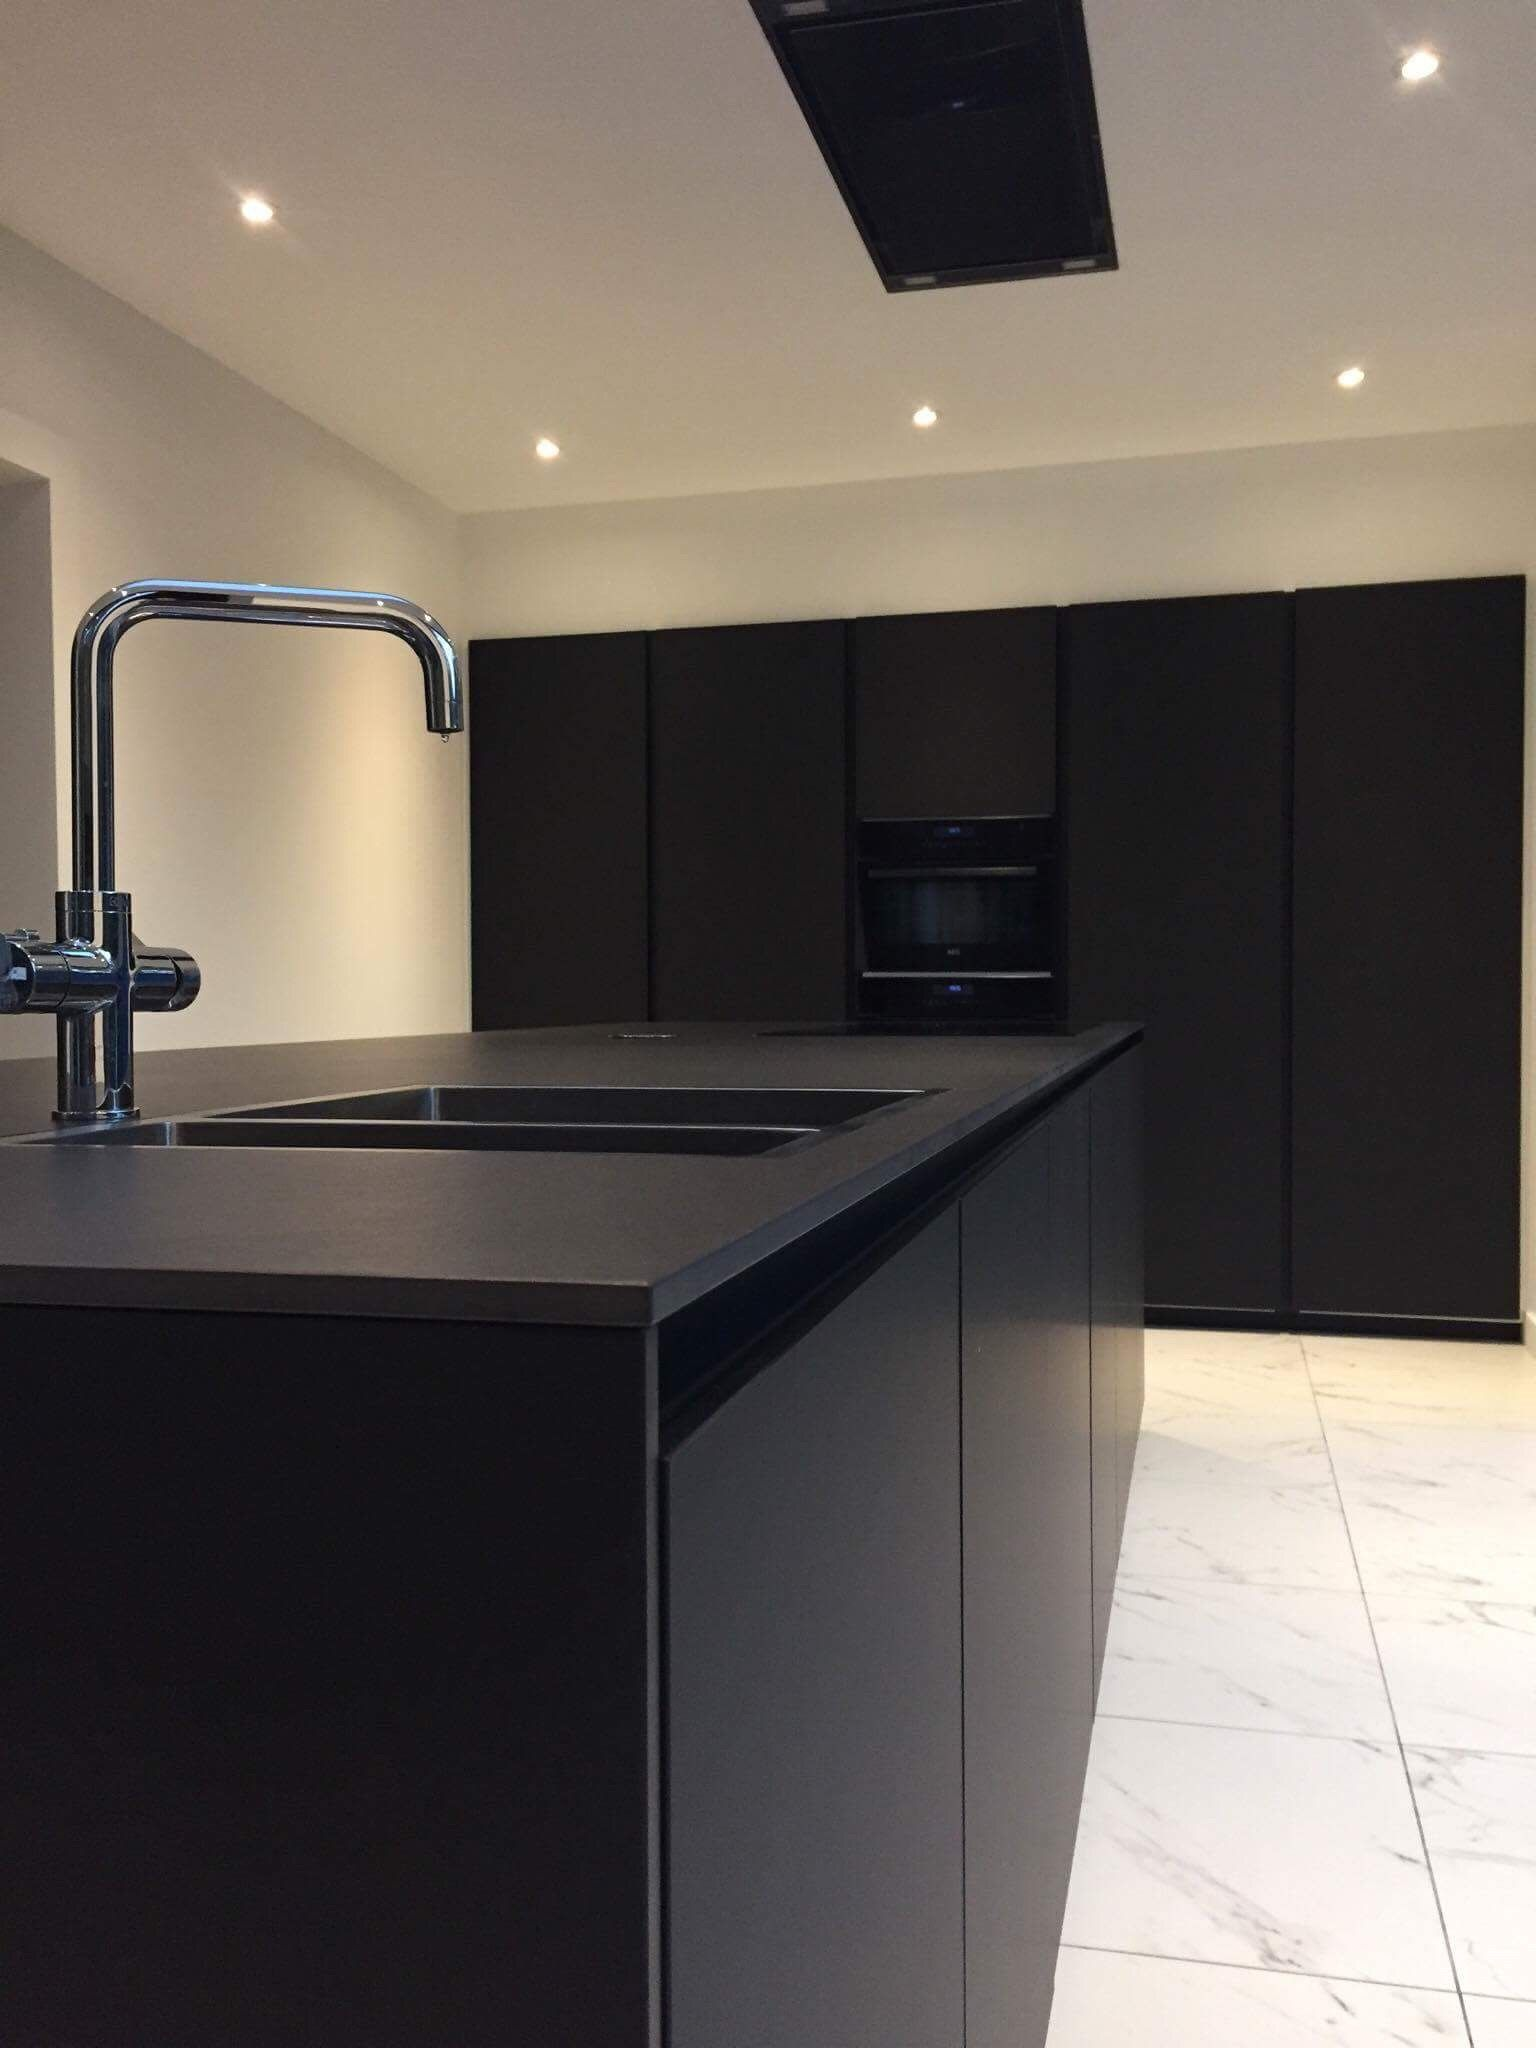 fenix kitchen with dekton countertop interiors pinterest cuisines. Black Bedroom Furniture Sets. Home Design Ideas